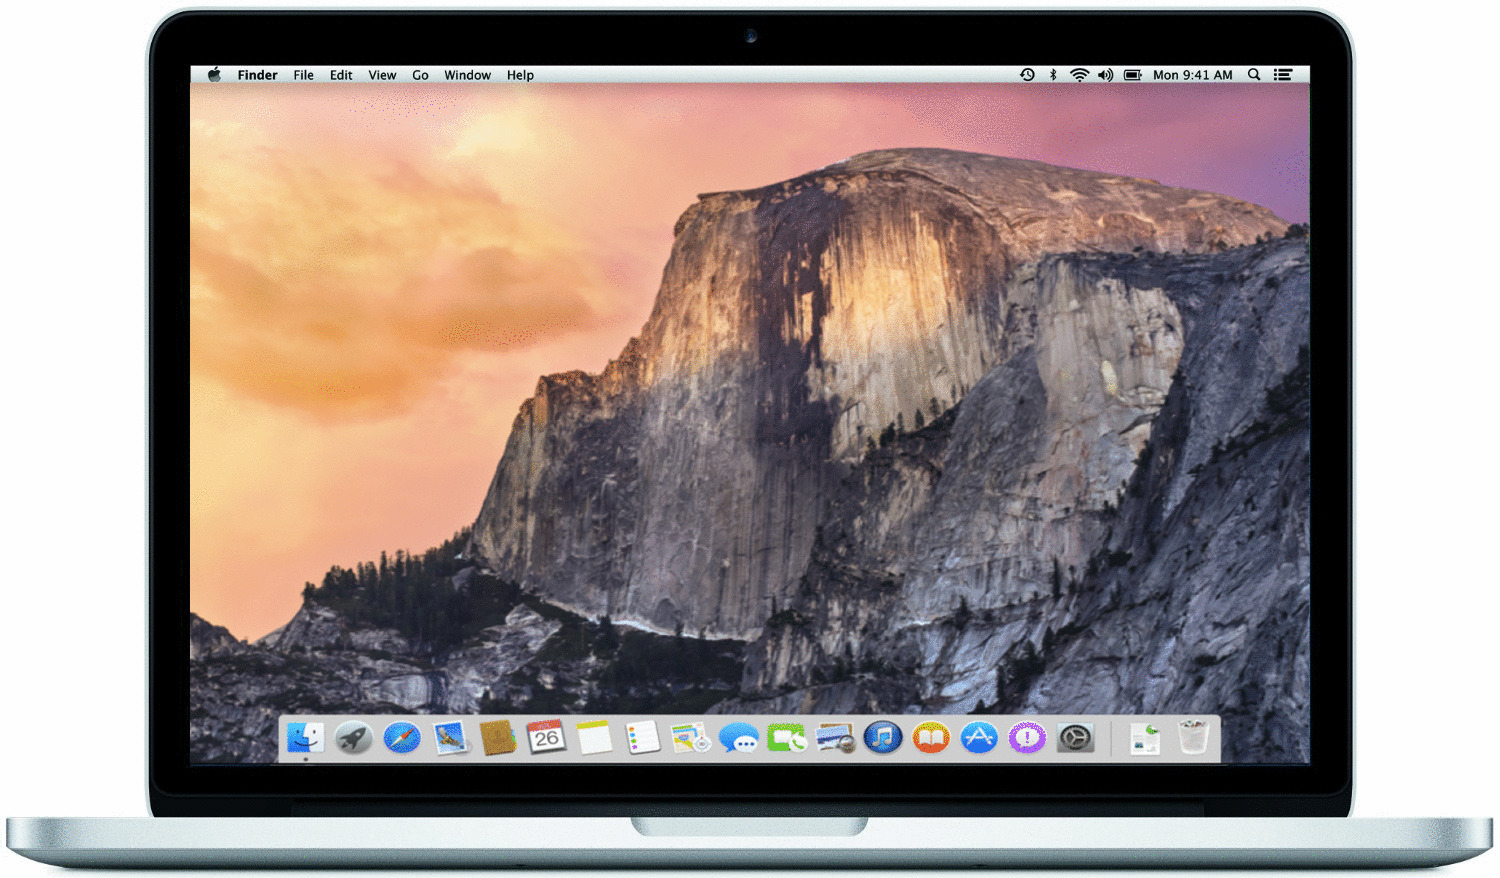 Apple MacBook Pro 13.3 (Retina Display) 2.7 GHz Intel Core i5 8 GB RAM 256 GB PCIe SSD [Early 2015, englisches Tastaturlayout, QWERTY]